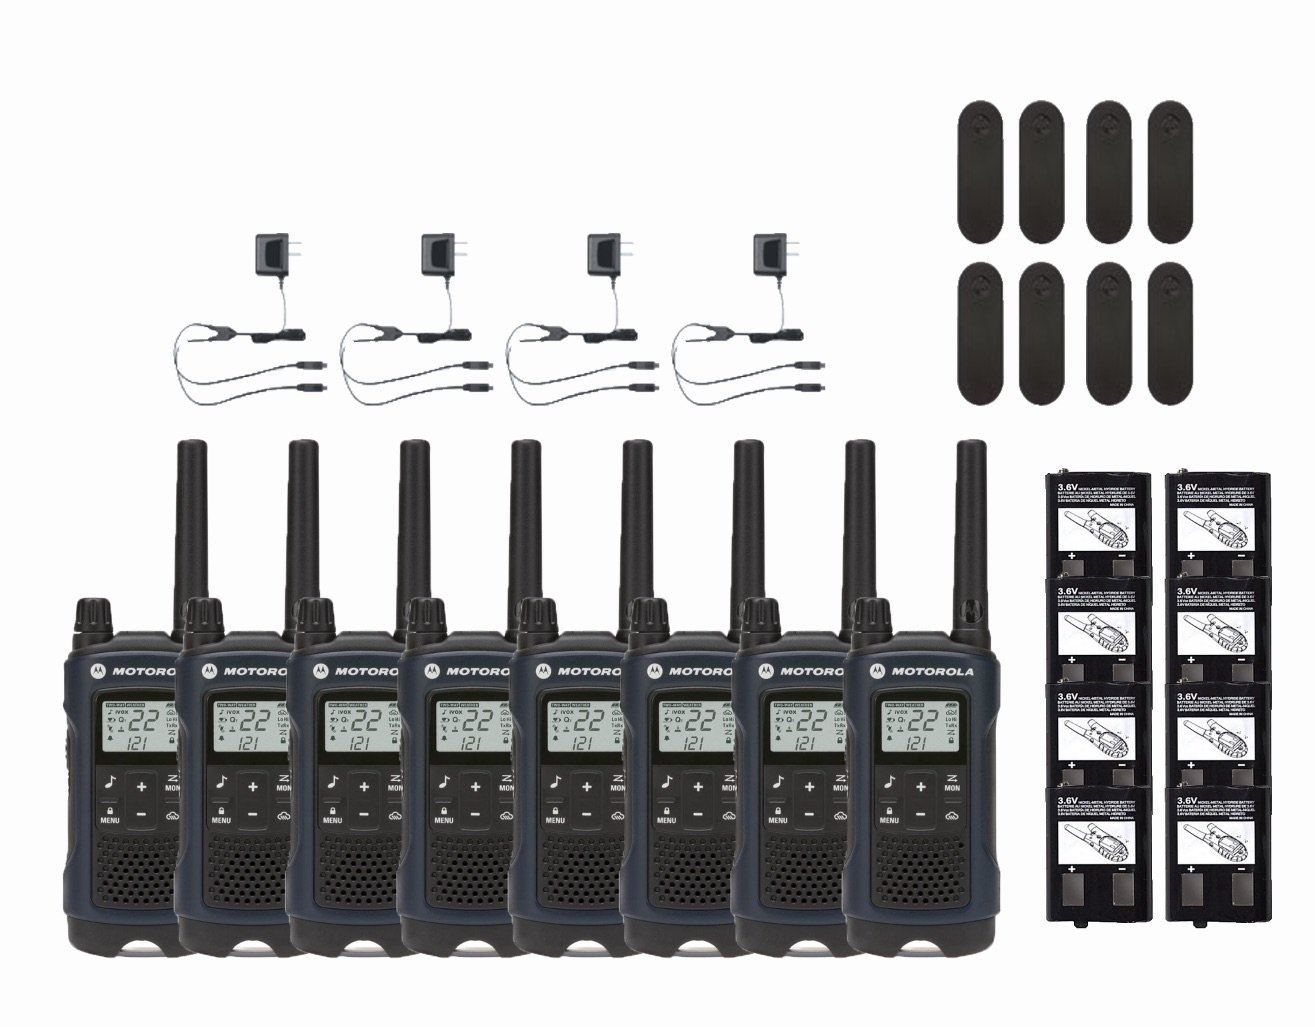 Motorola Talkabout T460 Two-Way Radio 22 Channel NOAA Walkie Talkies 8-PACK